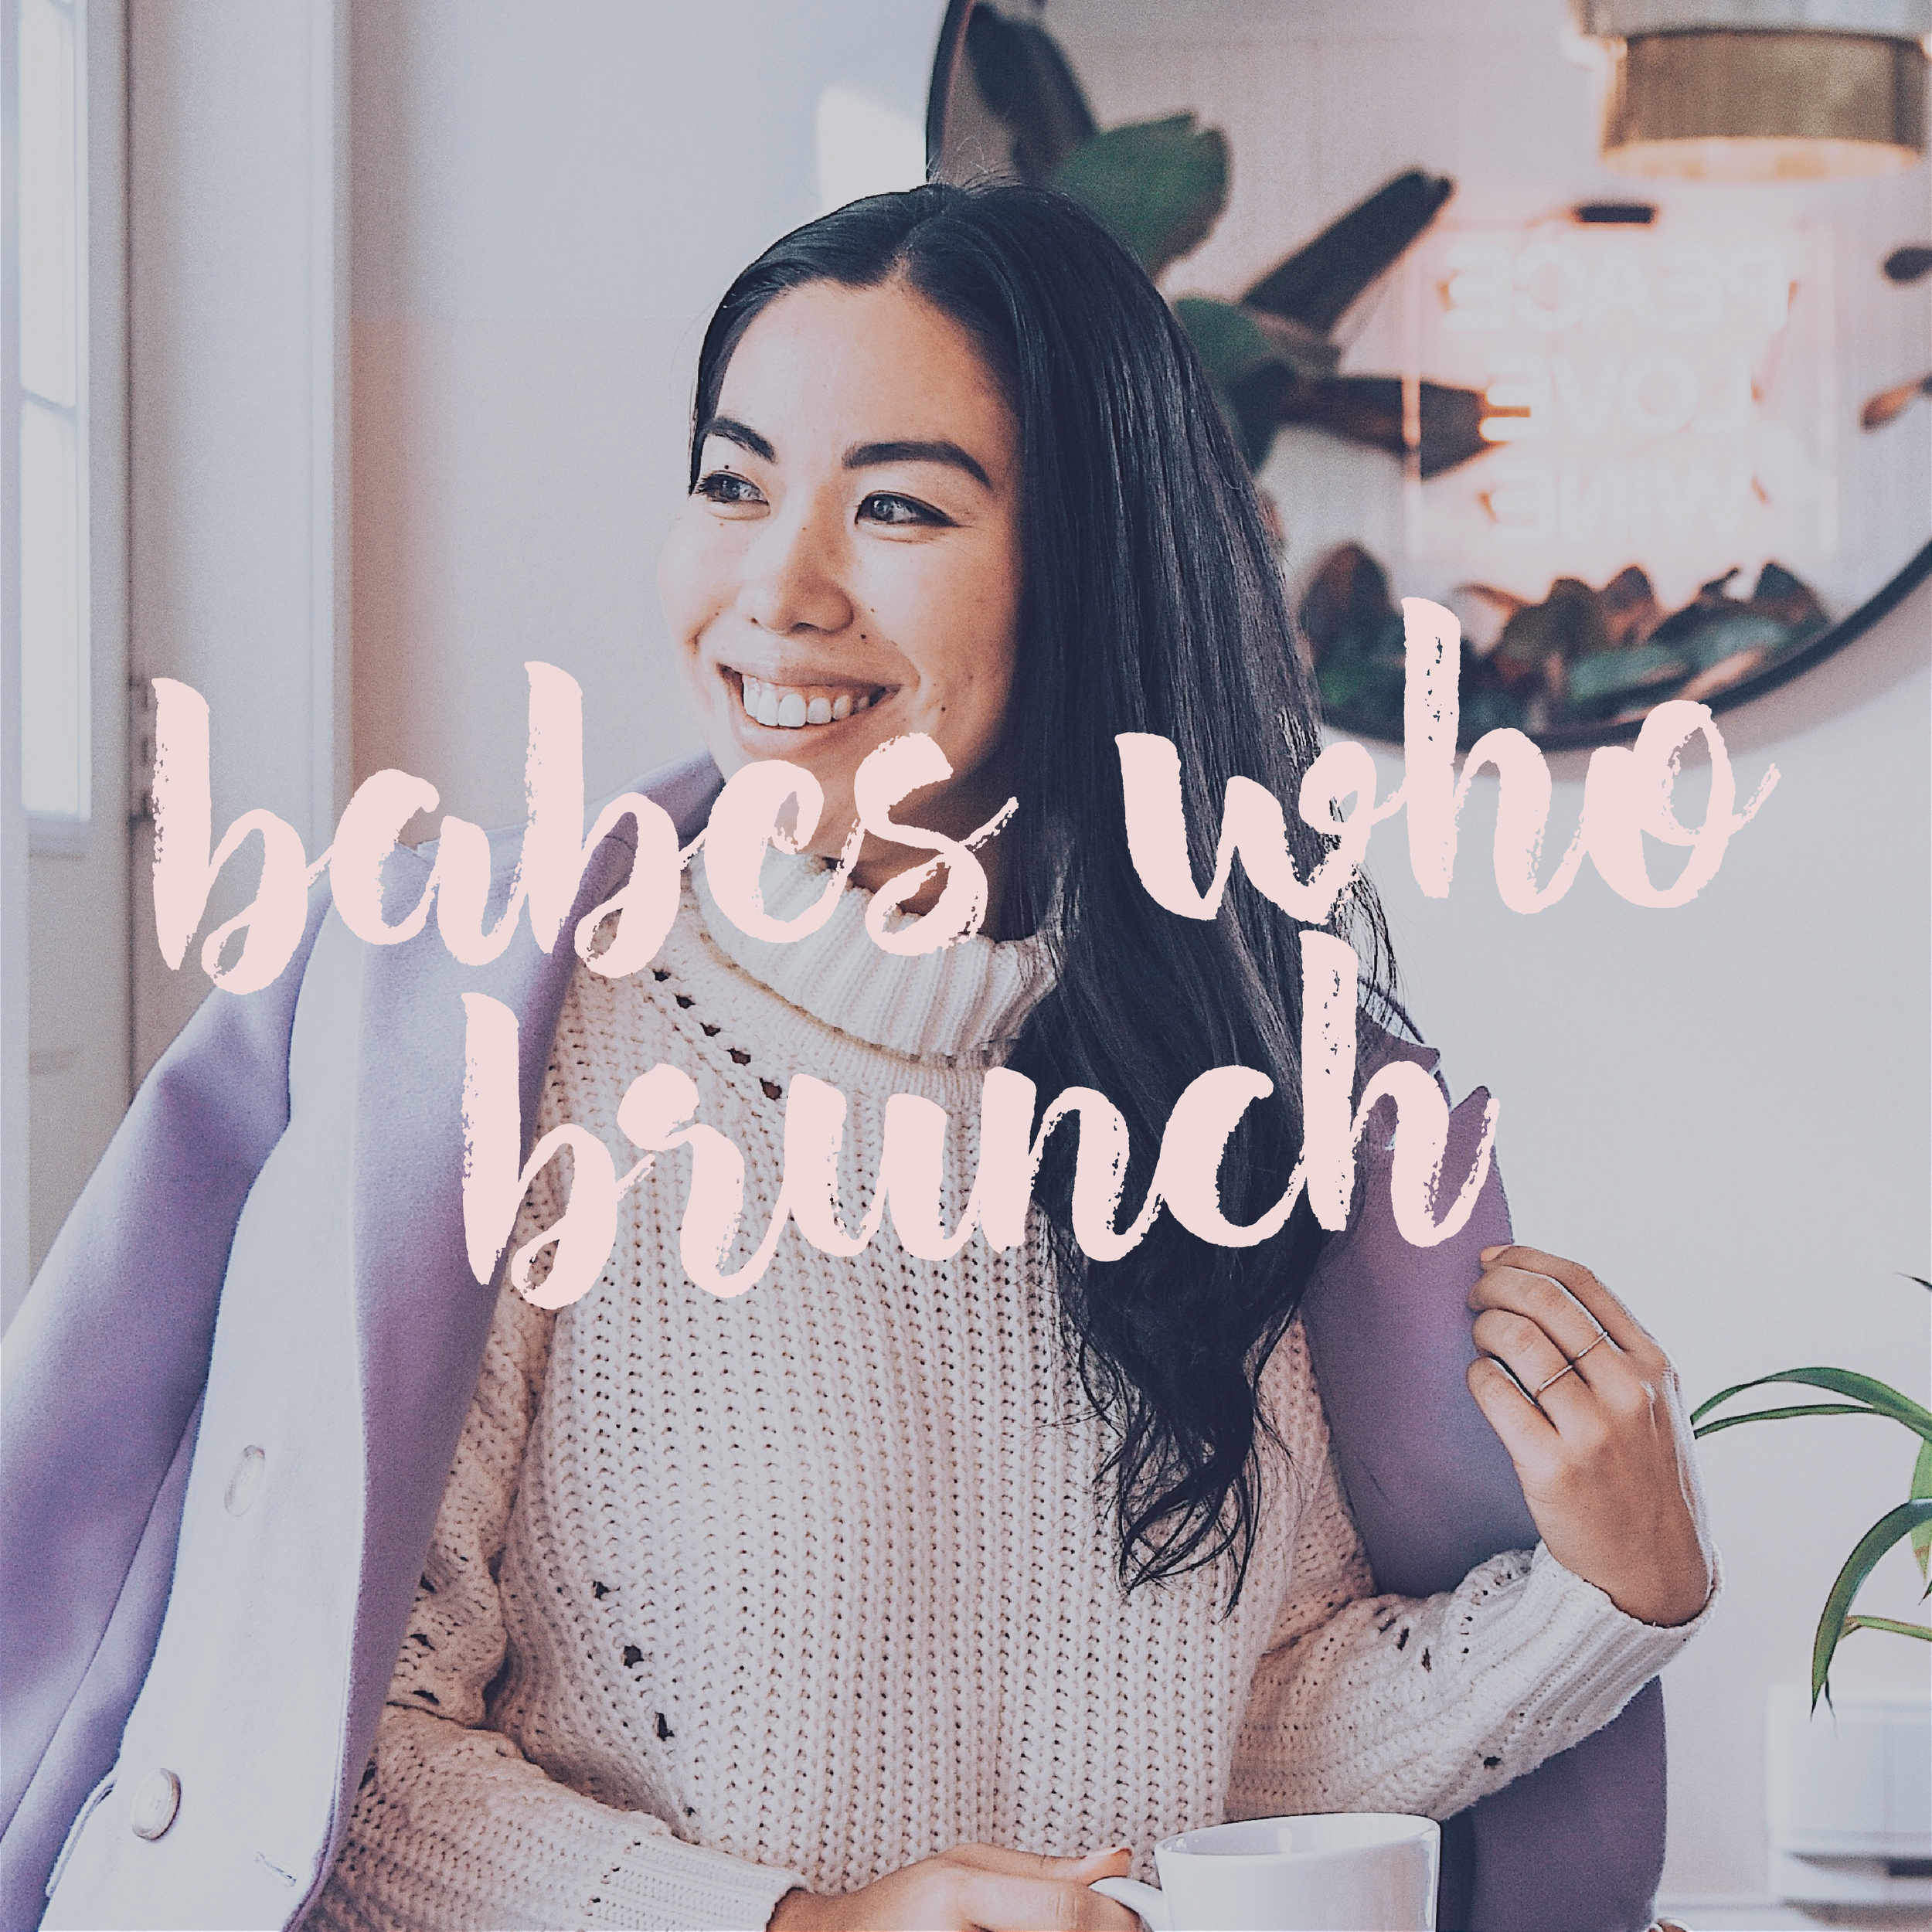 BABESWHOBRUNCH_KAT-01.png